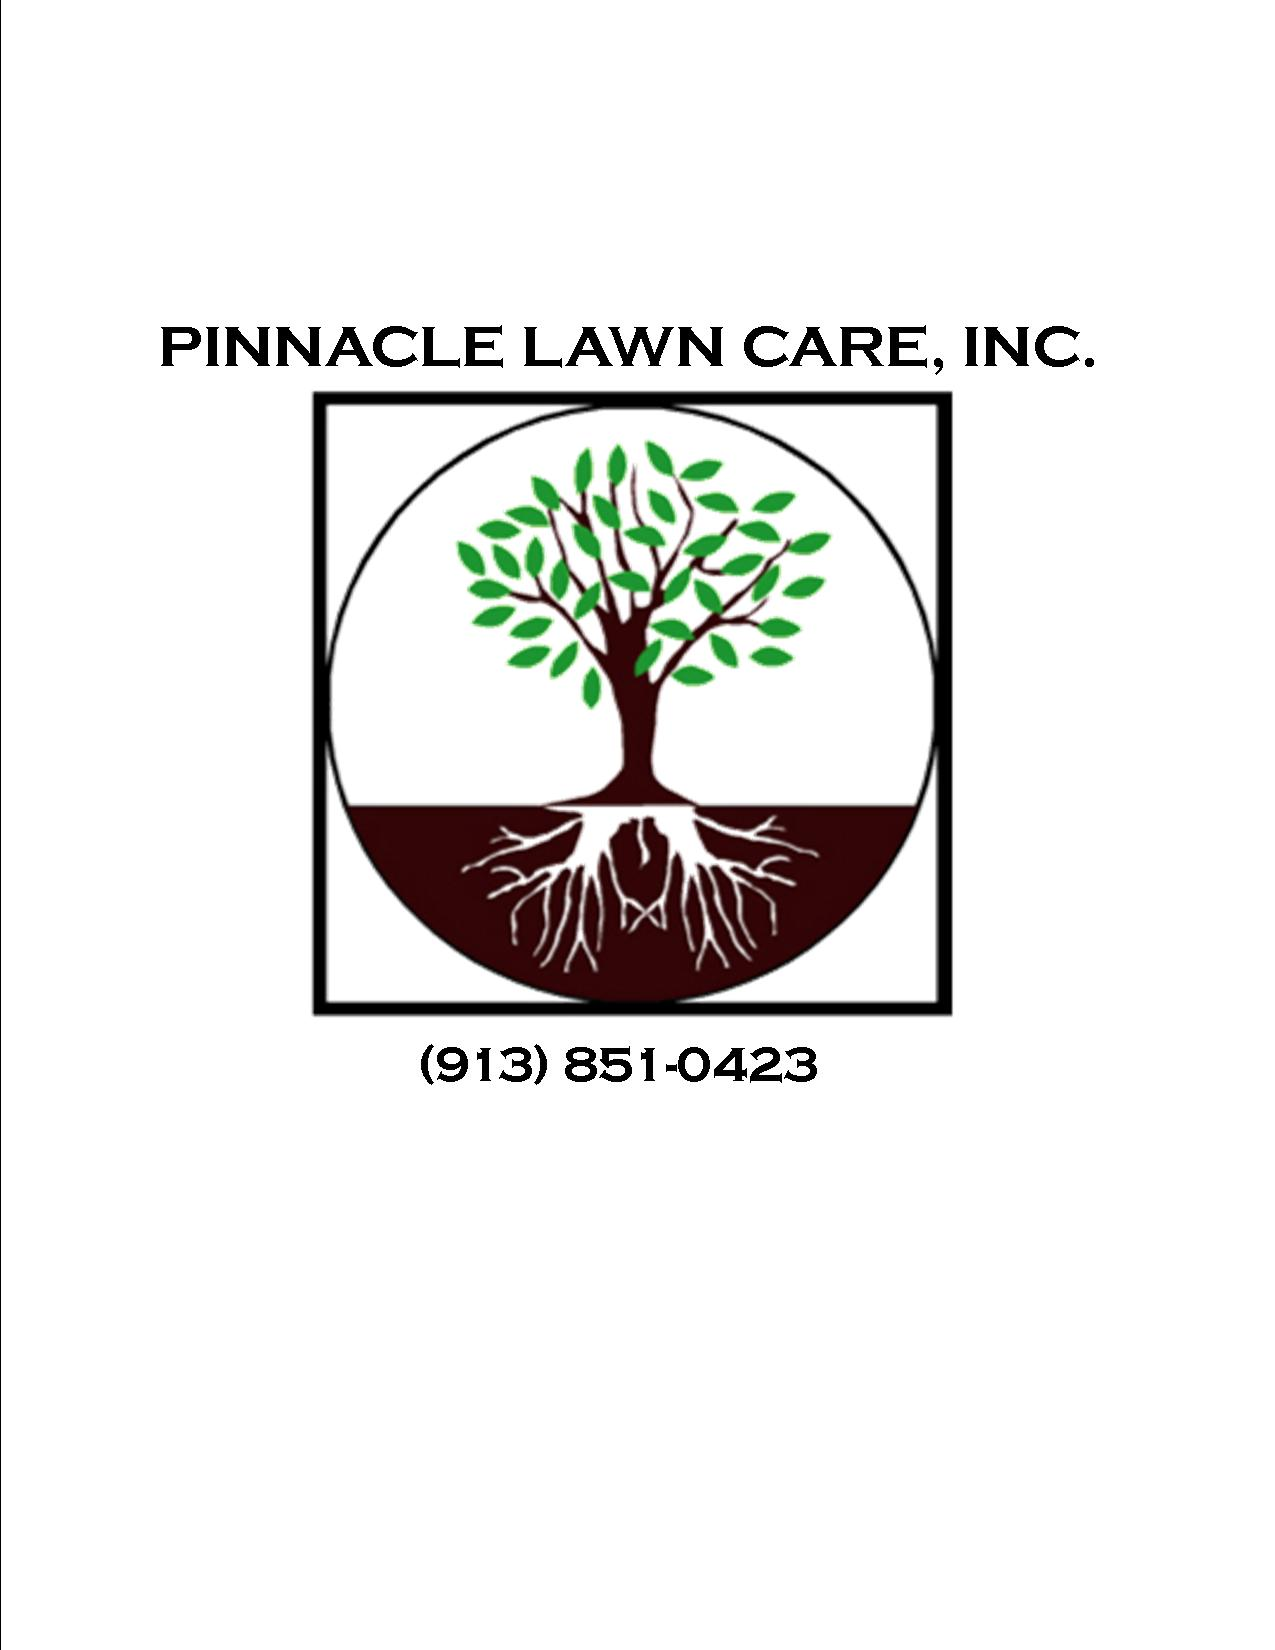 Copy of Pinnacle Lawn Care